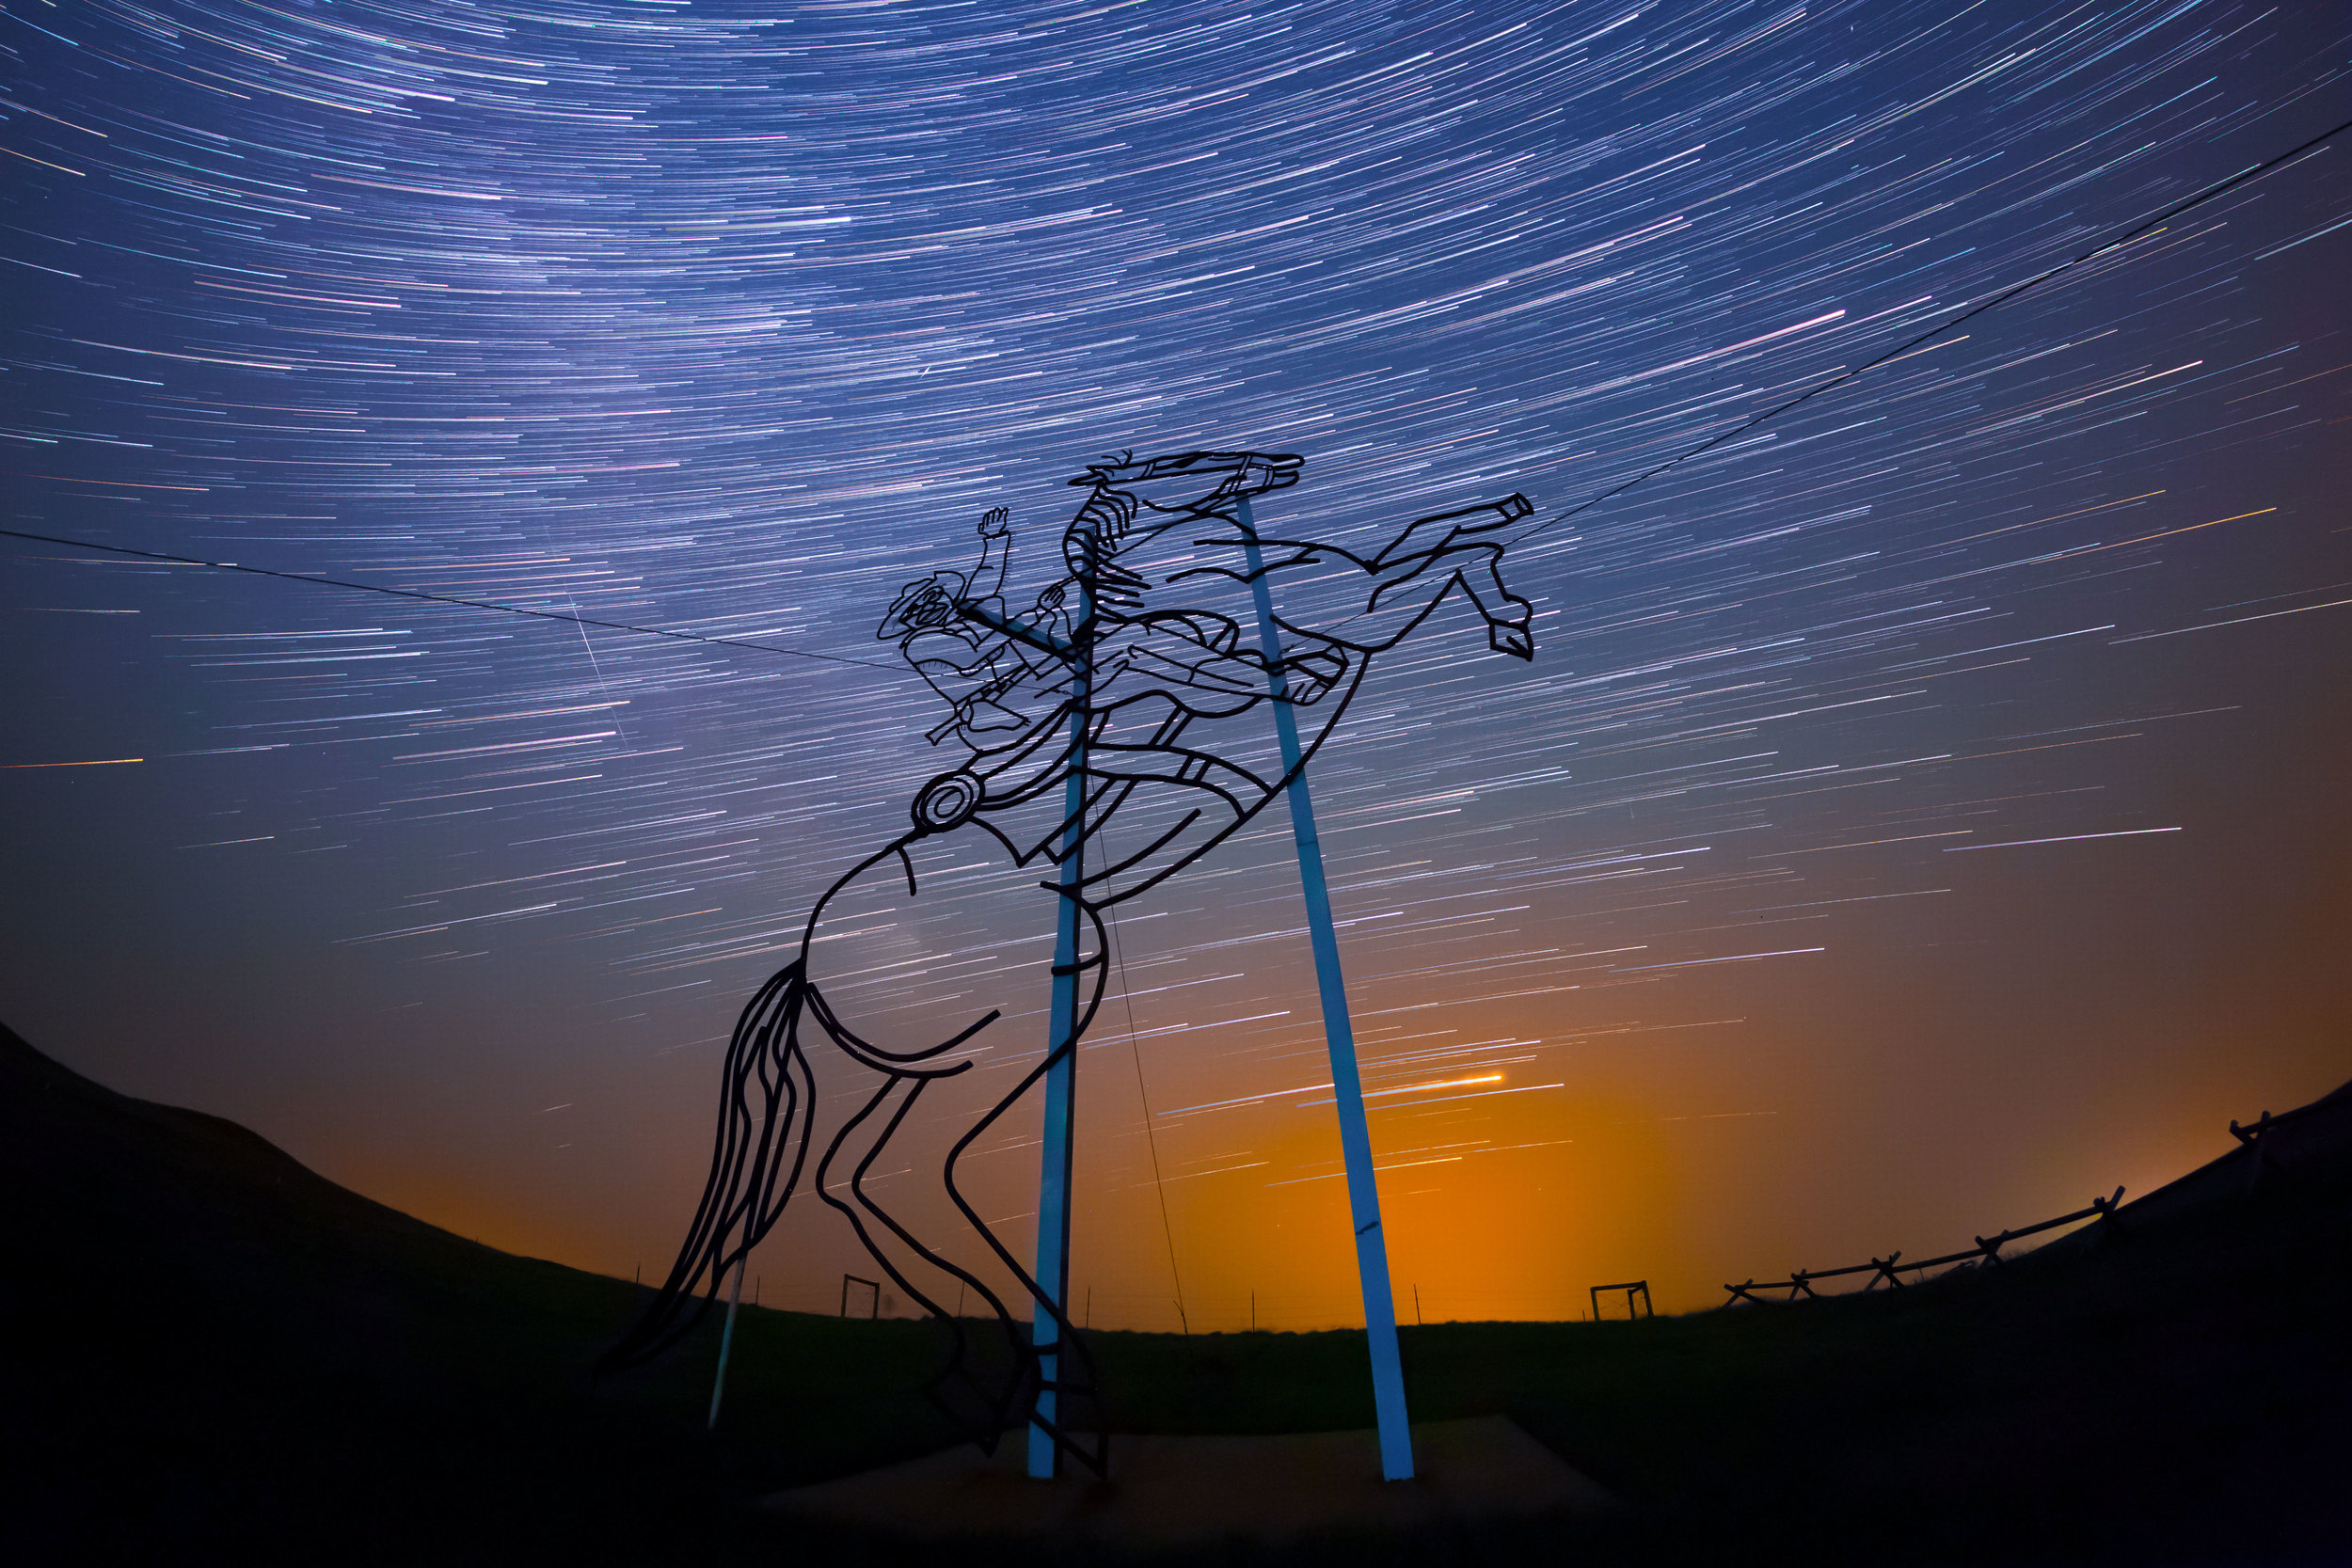 ENCHANTED HIGHWAY | Enchatned Hioghway, North Dakota |  BUY PHOTO PRINT